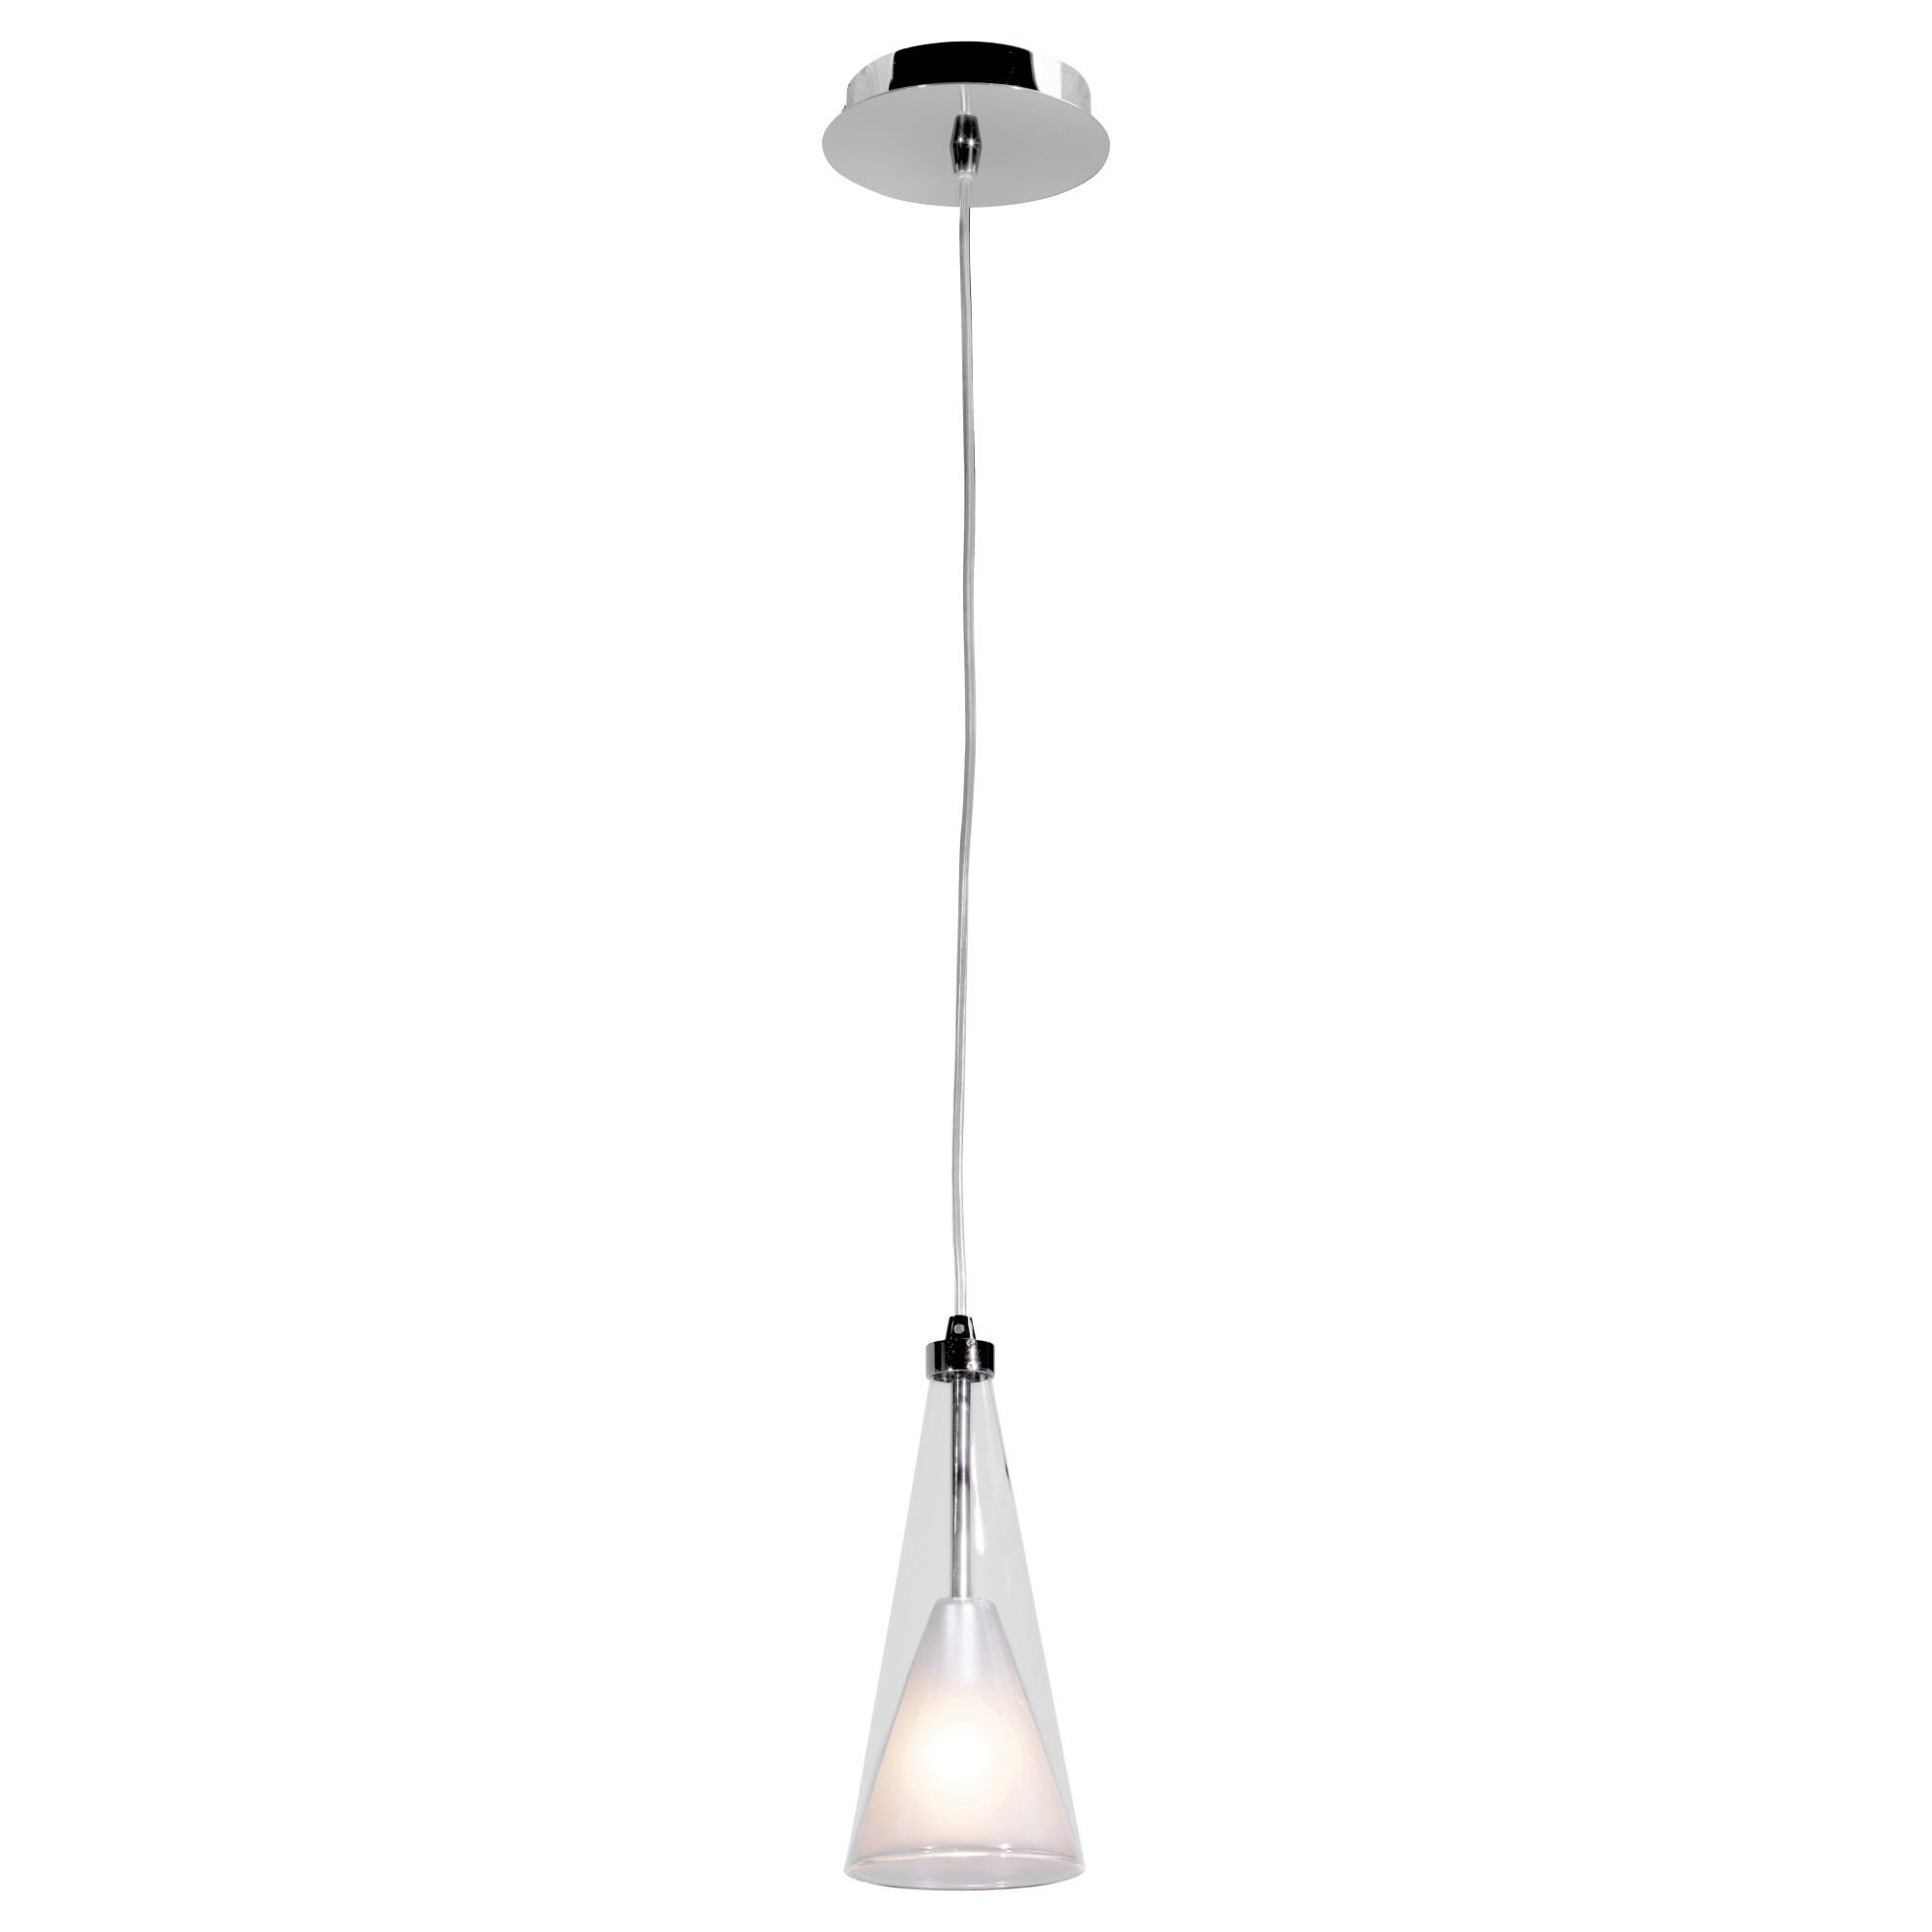 Access Lighting Icicle 10 Inch Mini Pendant Icicle 50543 CHCLOP Modern Contemporary